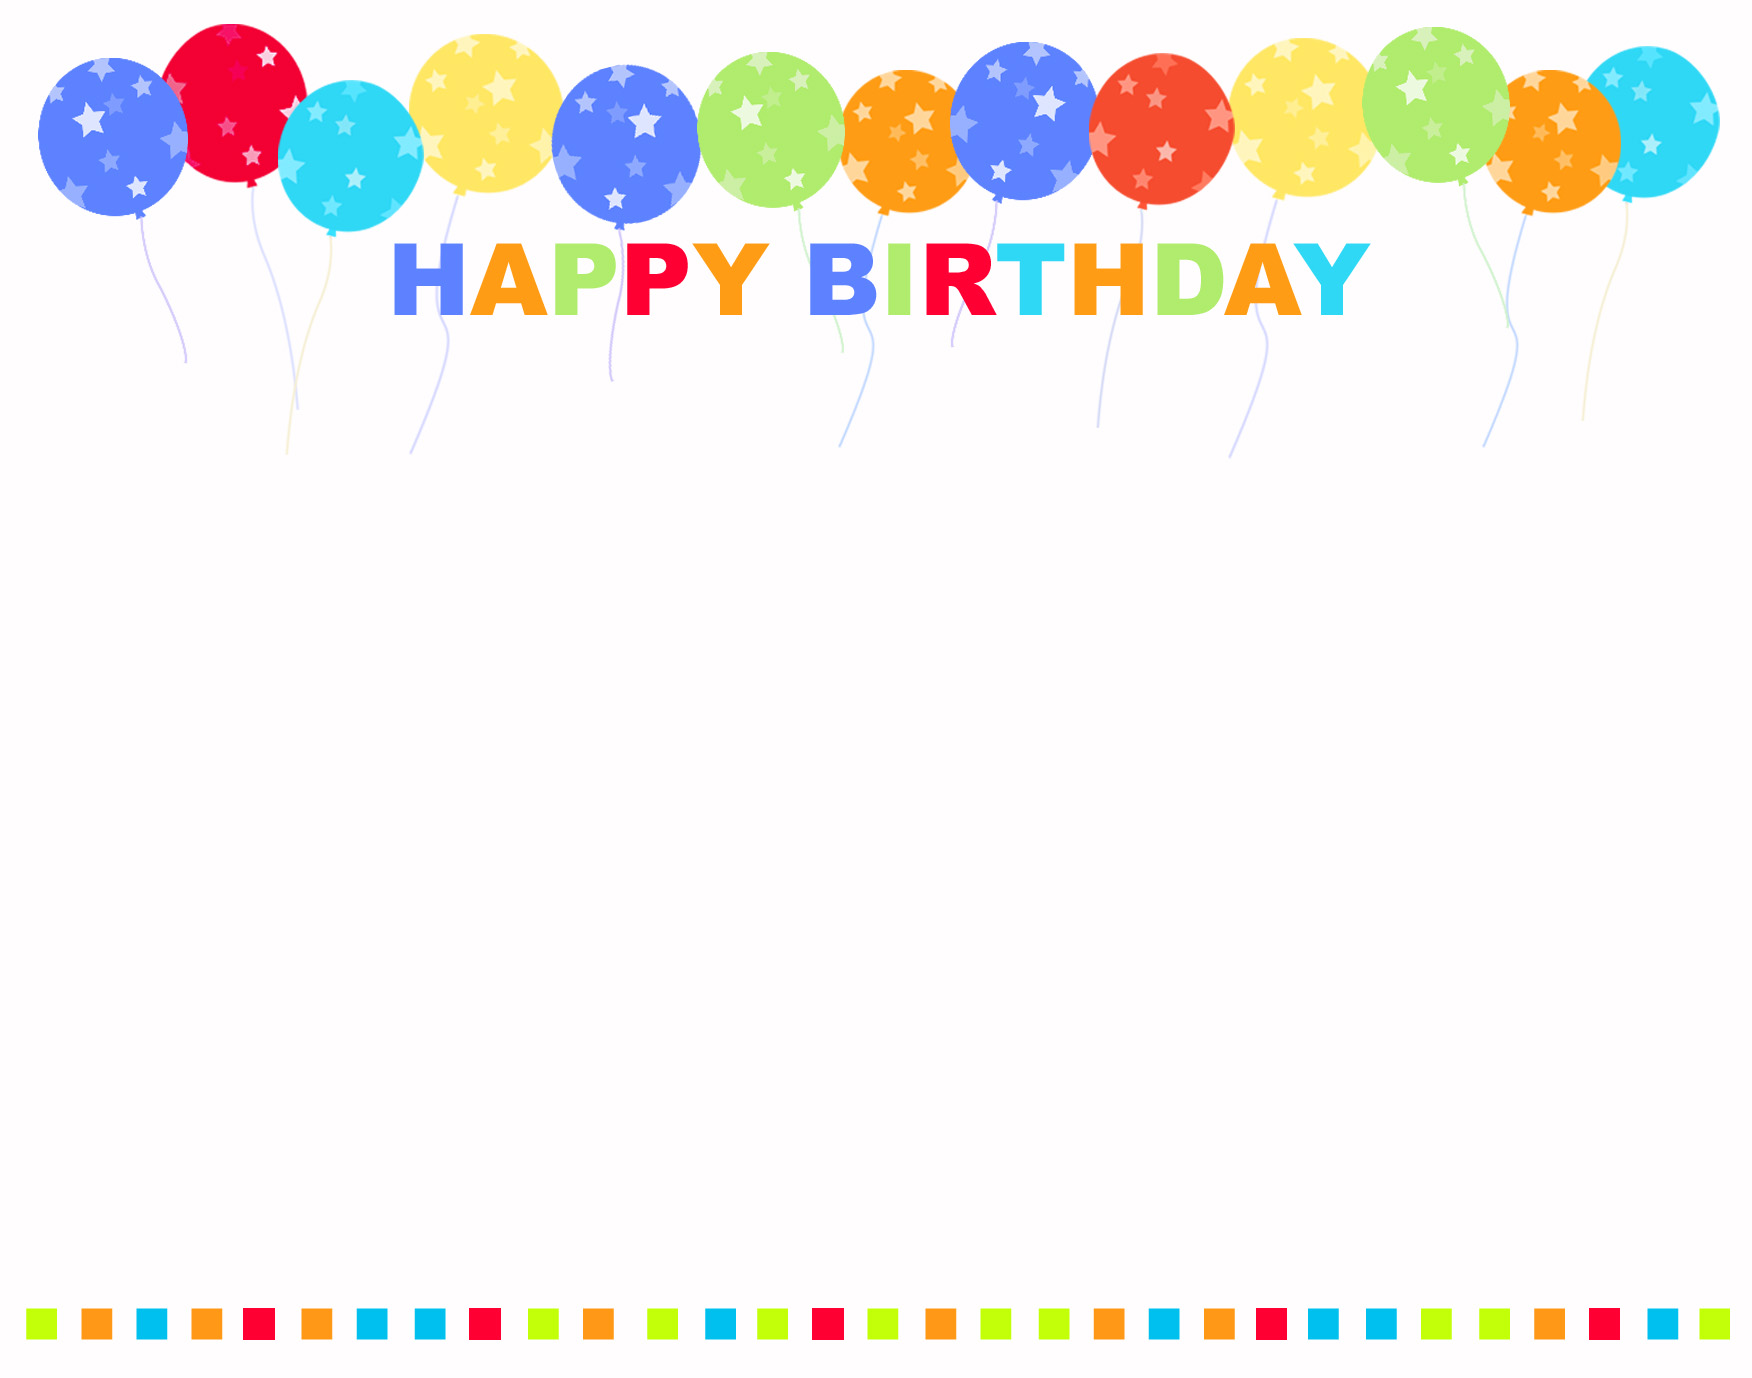 happy birthday borders free ; birthday%2520page%2520borders%2520free%2520;%2520499512962-free-birthday-borders